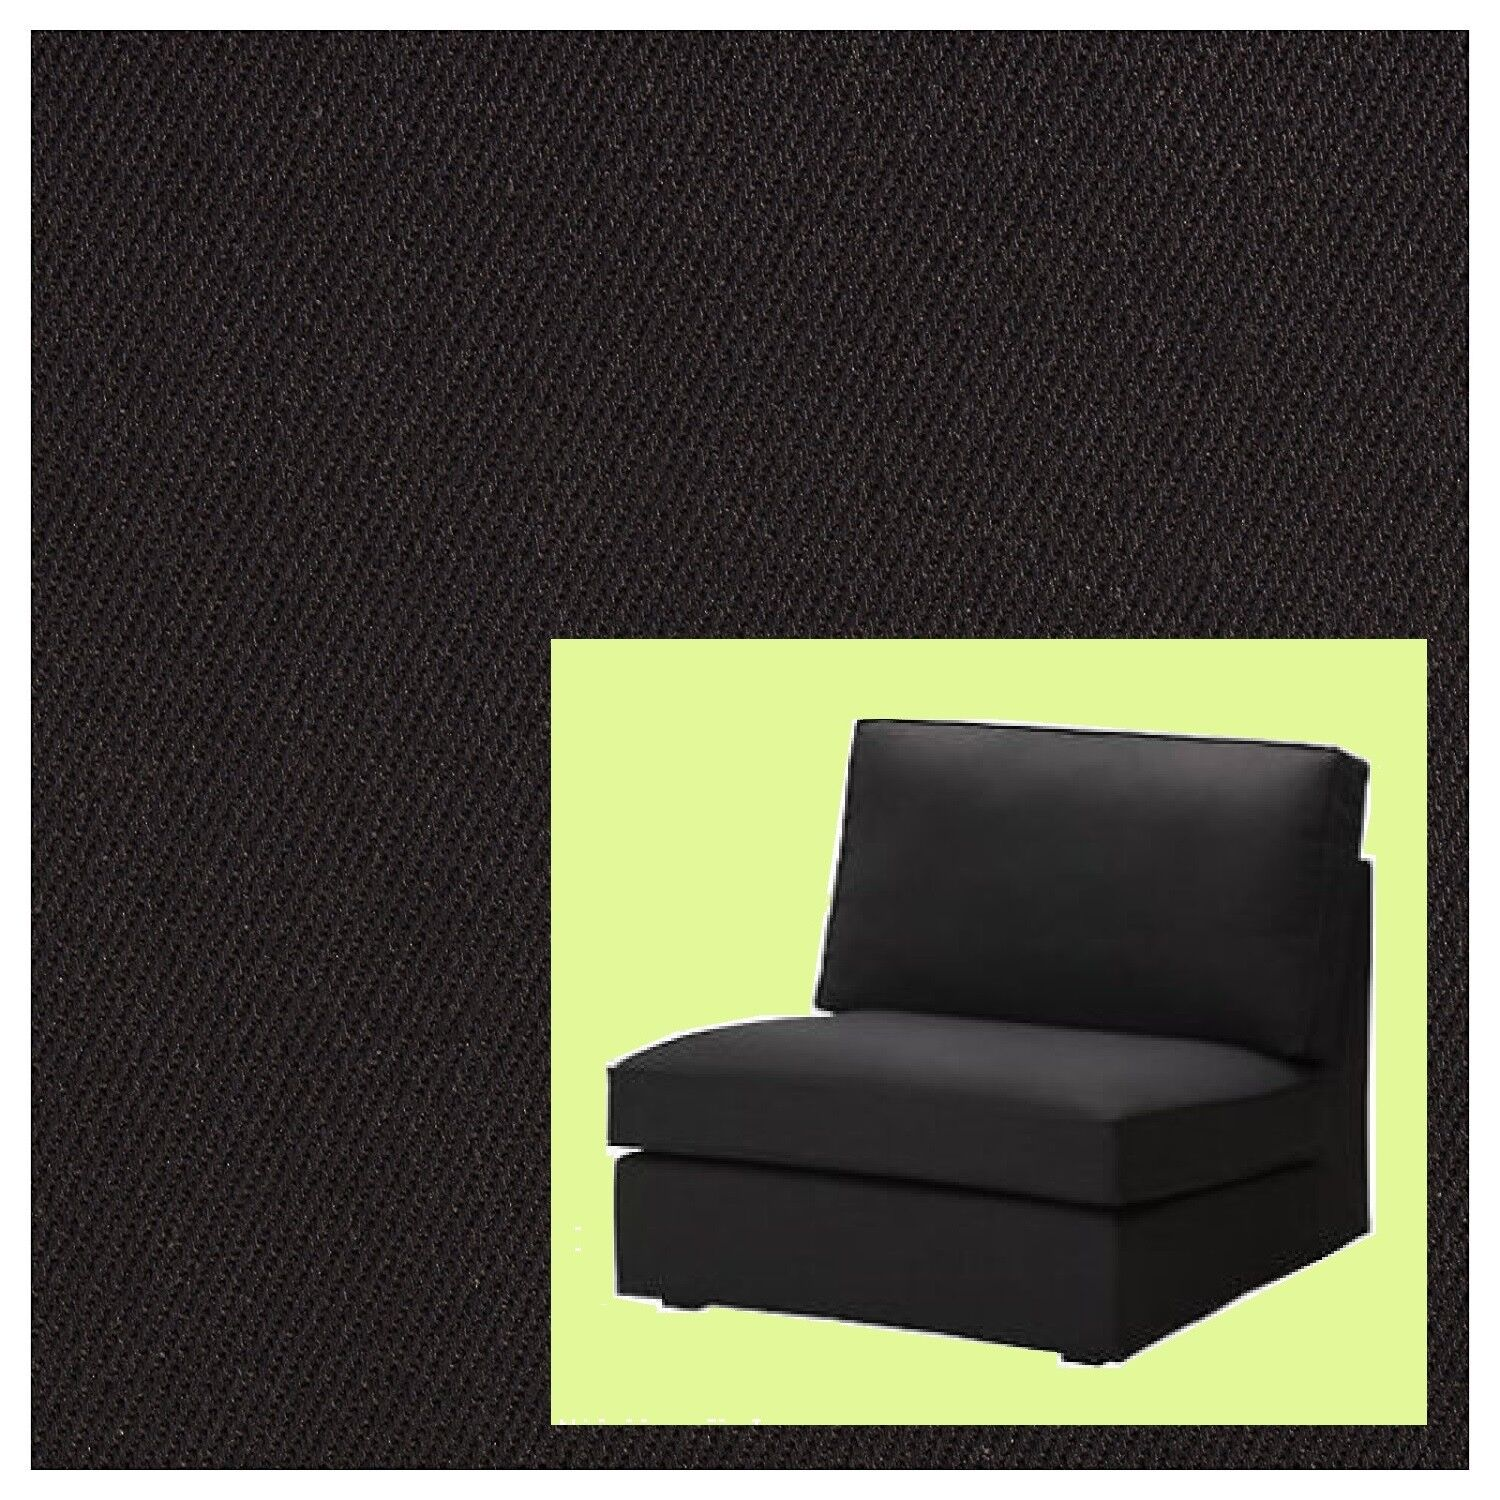 Fingal Swivel Chair Ikea Kivik One Seat Sofa Section Rare Chair Cover Idemo Black Denim New Sealed 1